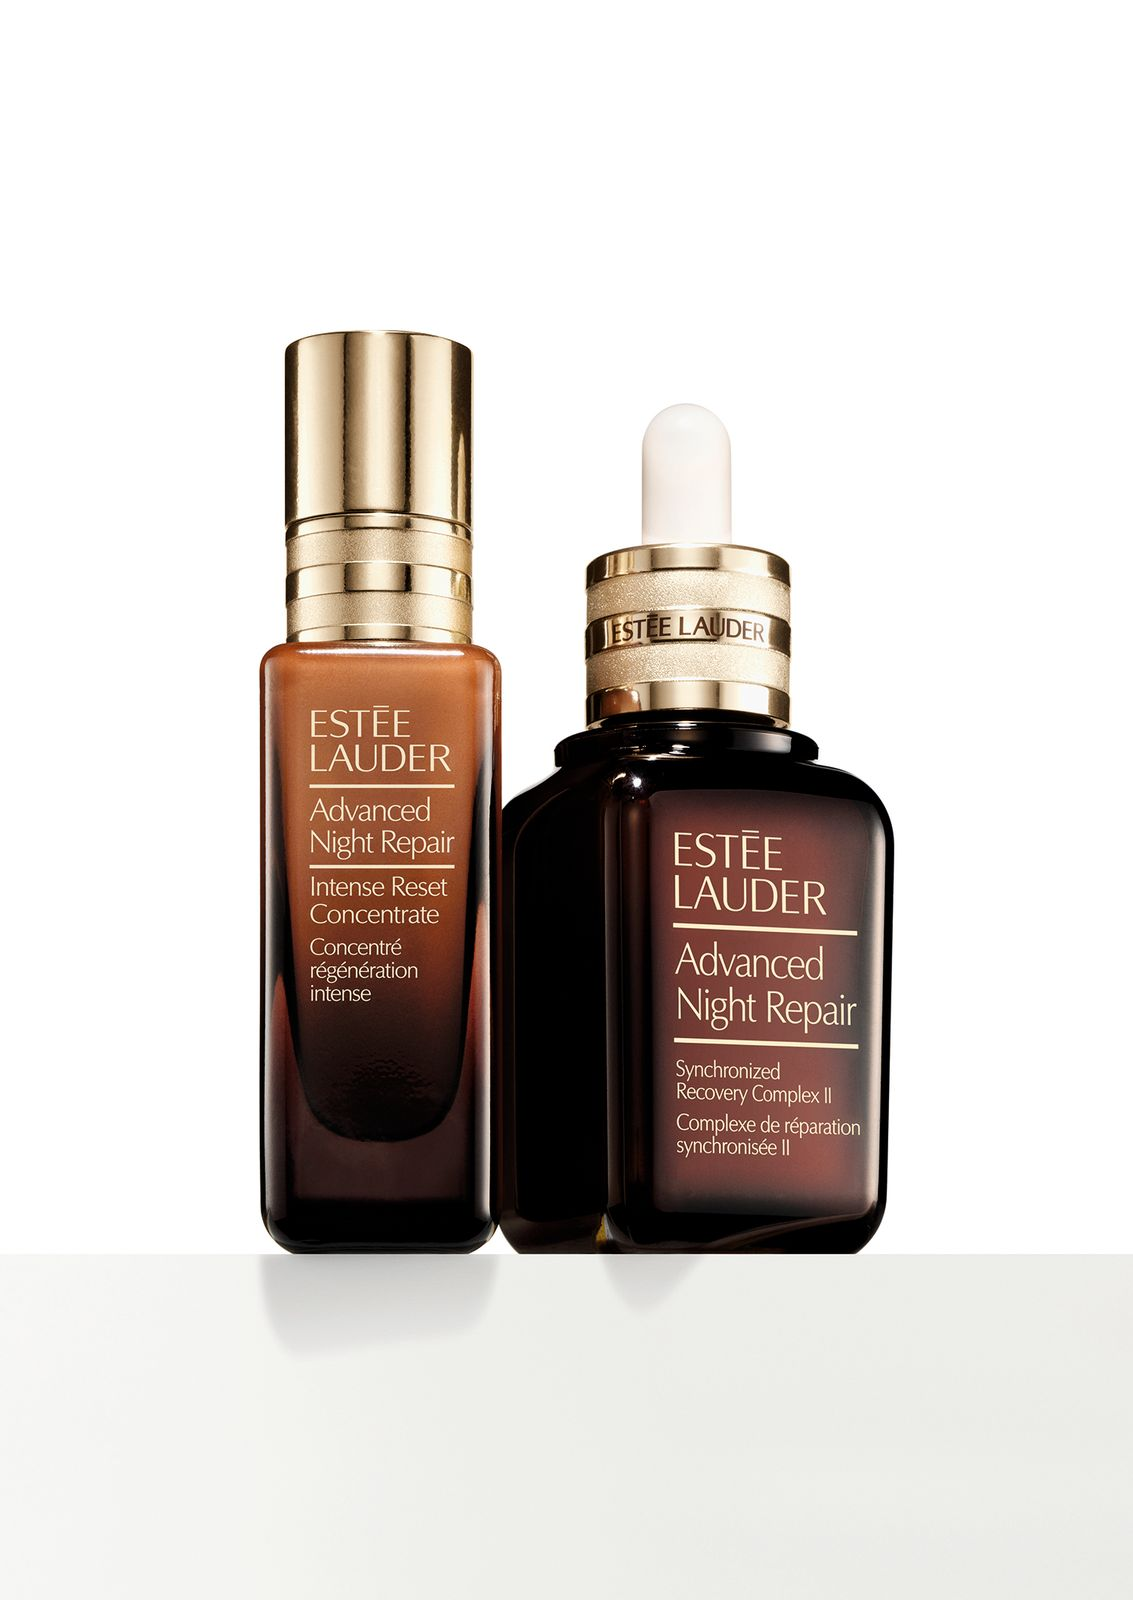 Advanced Night Repair Intense Reset Concentrate and Serum